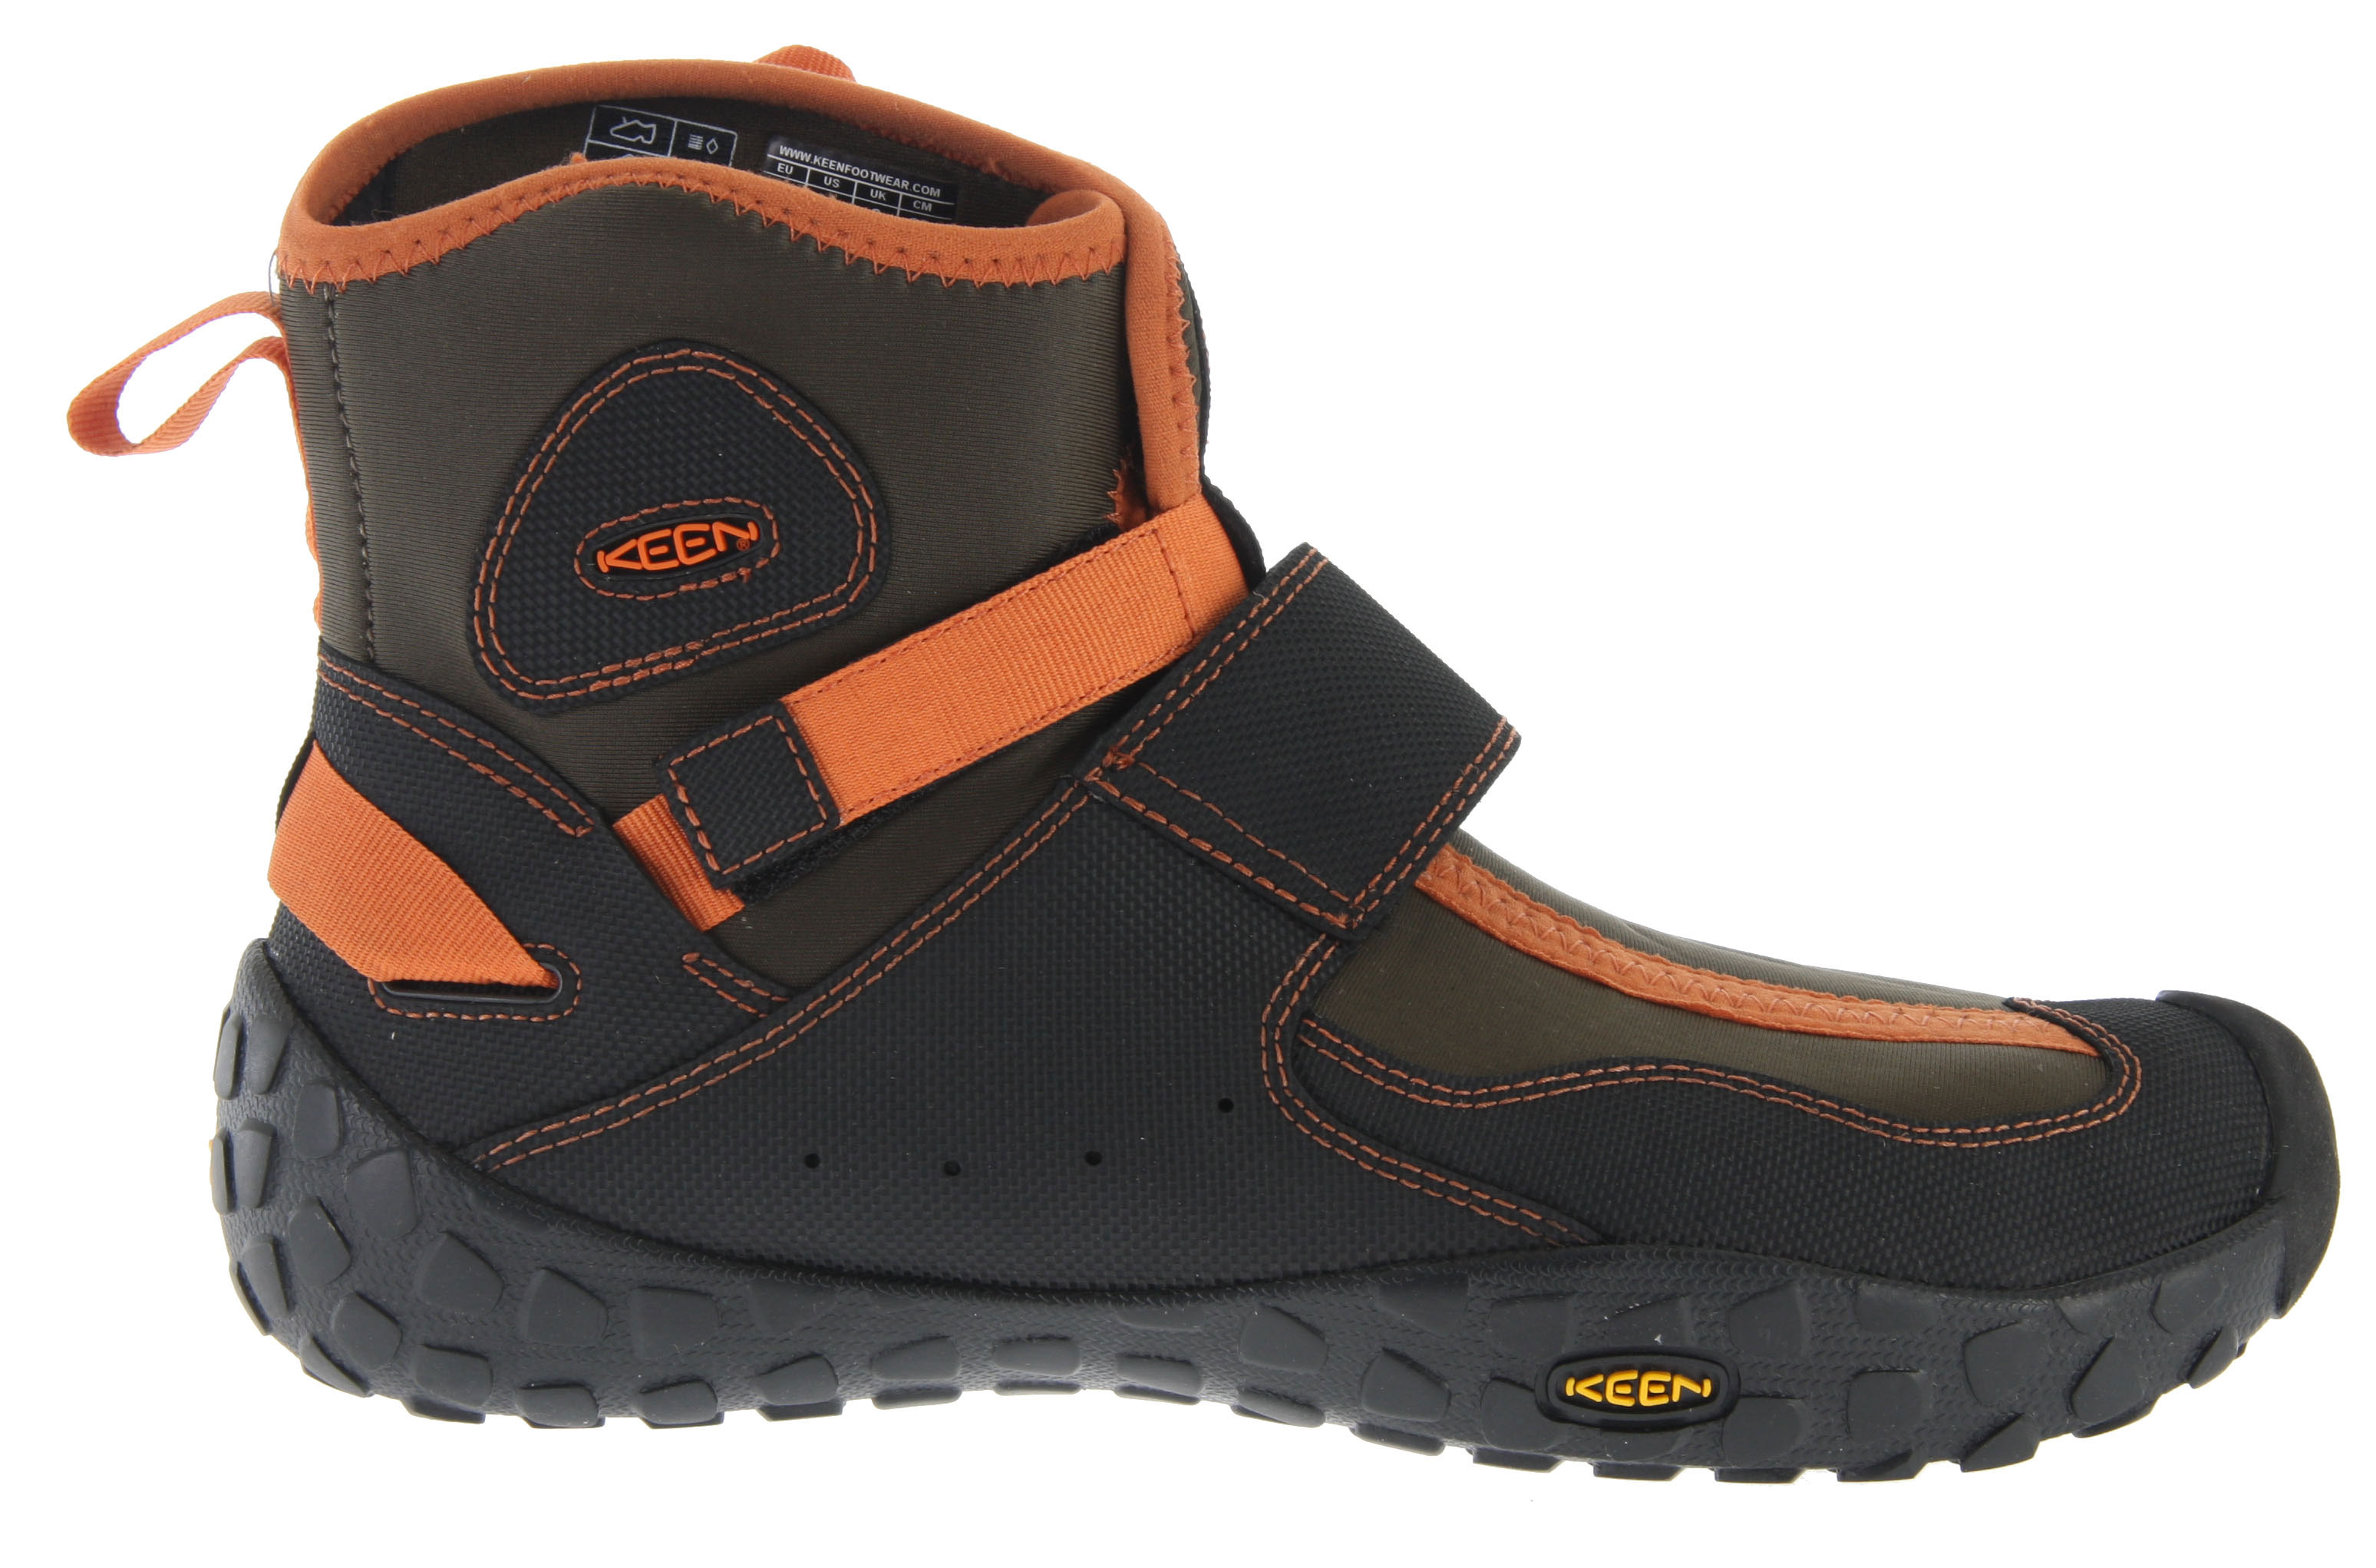 Kayak and Canoe KEEN designed this water bootie for our paddler friends, but that doesn't mean it's only for them. The Keen Gorge Boot is for anyone looking to keep cold out and comfort in. The 3mm neoprene keeps feet warm in the river (or any soggy place), the two strap system is easy to adjust even with frigid fingers, and the high traction outsole grips the most slippery surfaces.Key Features of the Keen Gorge Boots Water Shoes: Weight: 14.84 oz / 420.707 grams Fit Tip: We find this style runs pretty true to size. Lining: AEGIS Microbe Shield treated lining Upper: Abrasion resistant synthetic and 3MM neoprene upper Rubber: High traction, performance water outsole Activities: Paddle, Beach Type: Boots Weather: Wet - waterproof Abrasion resistant synthetic and 3MM neoprene upper AEGIS Microbe Shield treated lining High traction, performance water outsole Multi-point adjustable strap system Removable metatomical EVA molded footbed with AEGIS Microbe Shield Wrapped outsole with multi directional lug pattern Aegis Microbe Shield: Aegis Microbe Shield controls the bacteria and fungi that cause odors, stains and product deterioration. Aegis technology is free of environmentally harmful substances. - $58.95